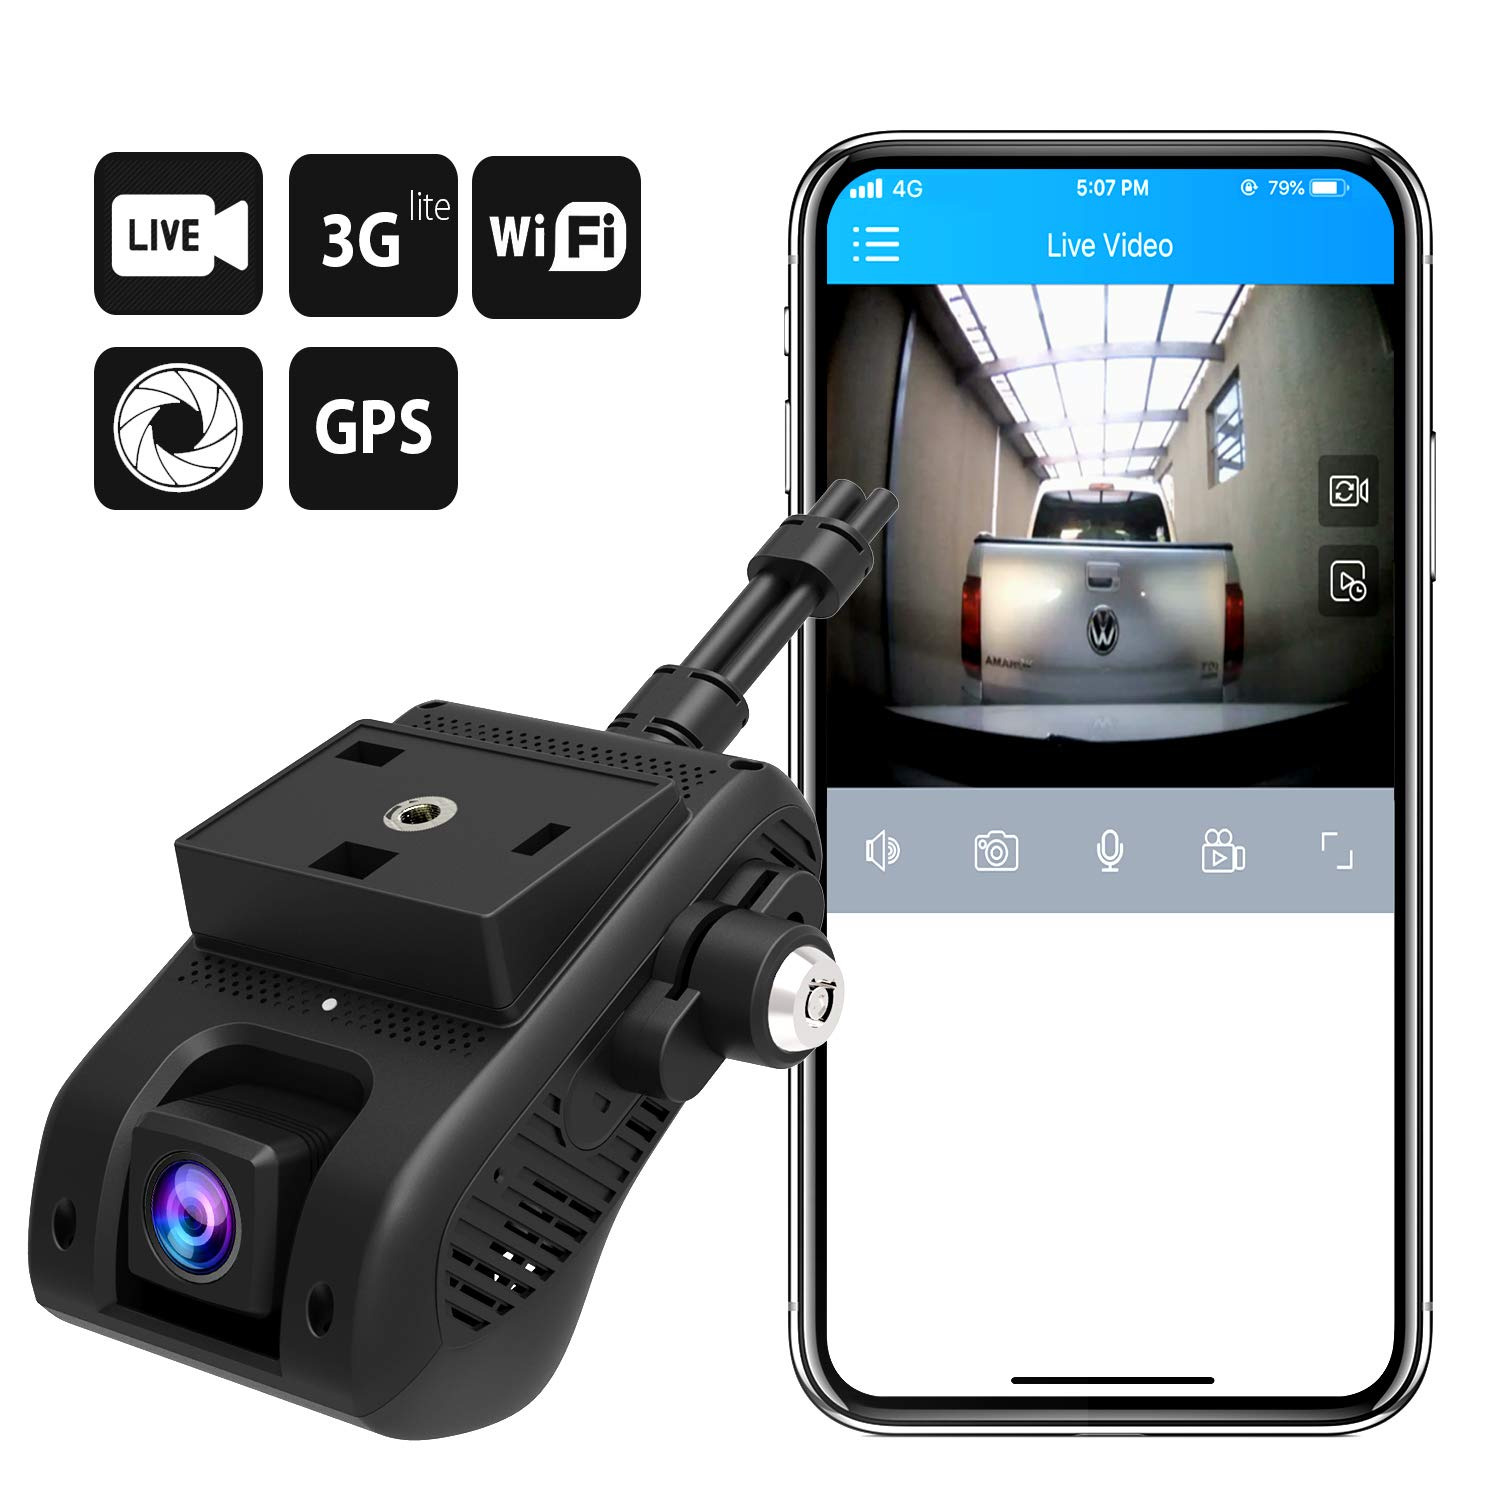 Lncoon 3G//WiFi Car Dash Camera 1080P with 3G Live Video Streaming Vibration//SOS Alarm JC200 Dual Dash Cam Dashboard Camera DVR Recorder with Loop Recording//G-Sensor//Power Cutoff GPS Tracking